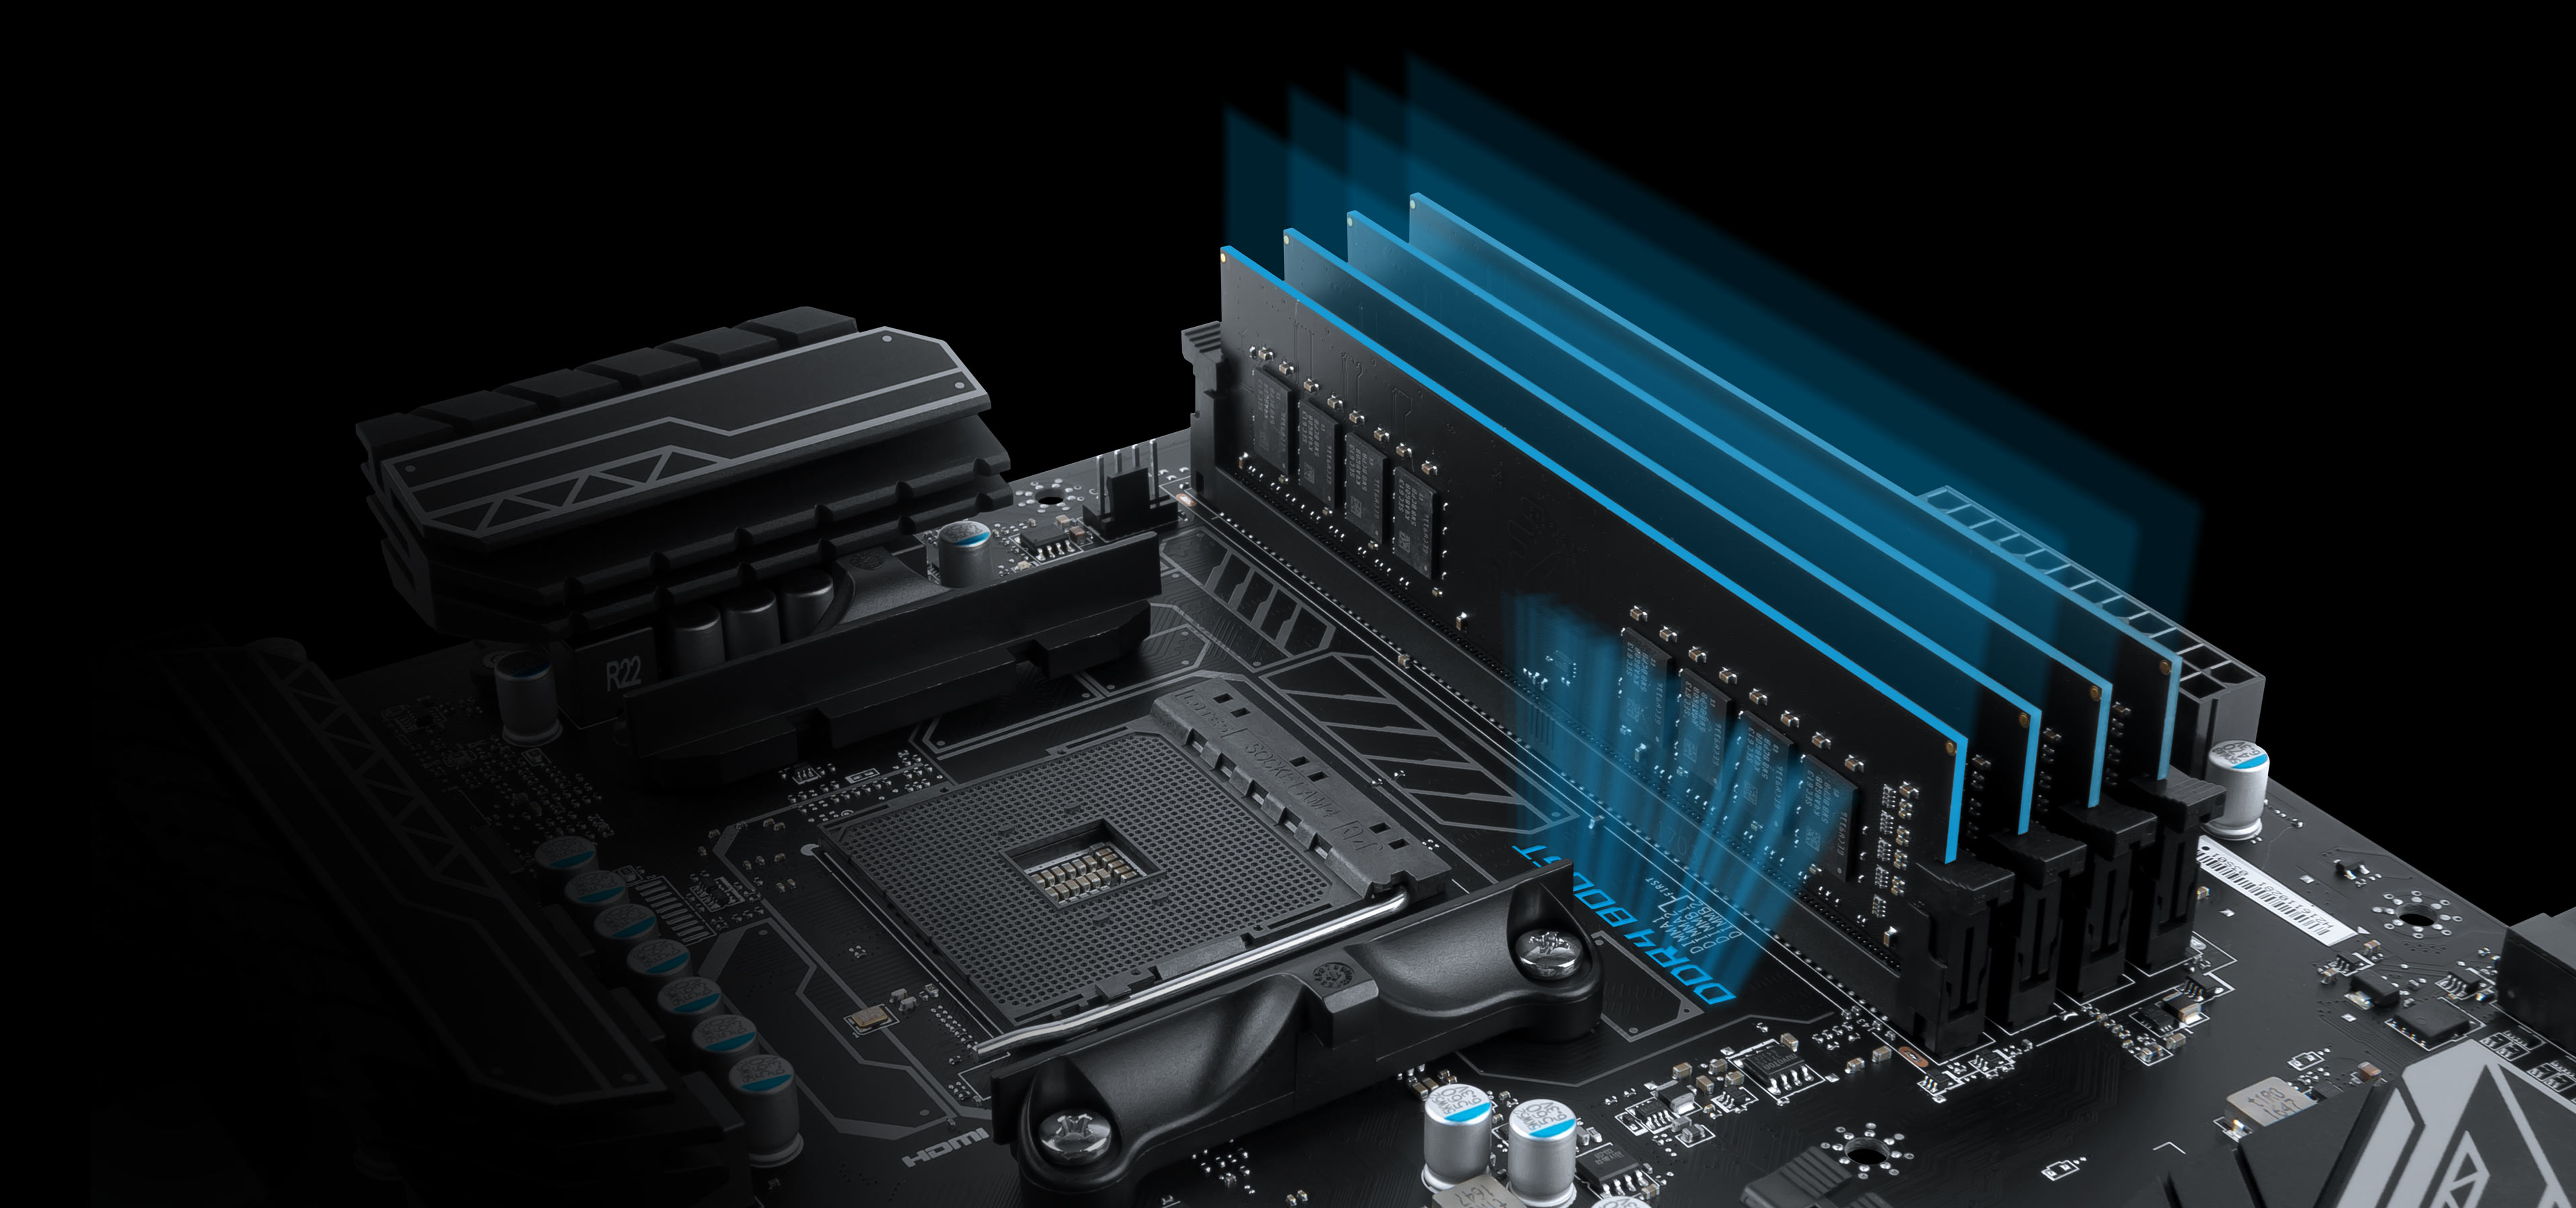 B350 PC MATE | Motherboard - The world leader in motherboard